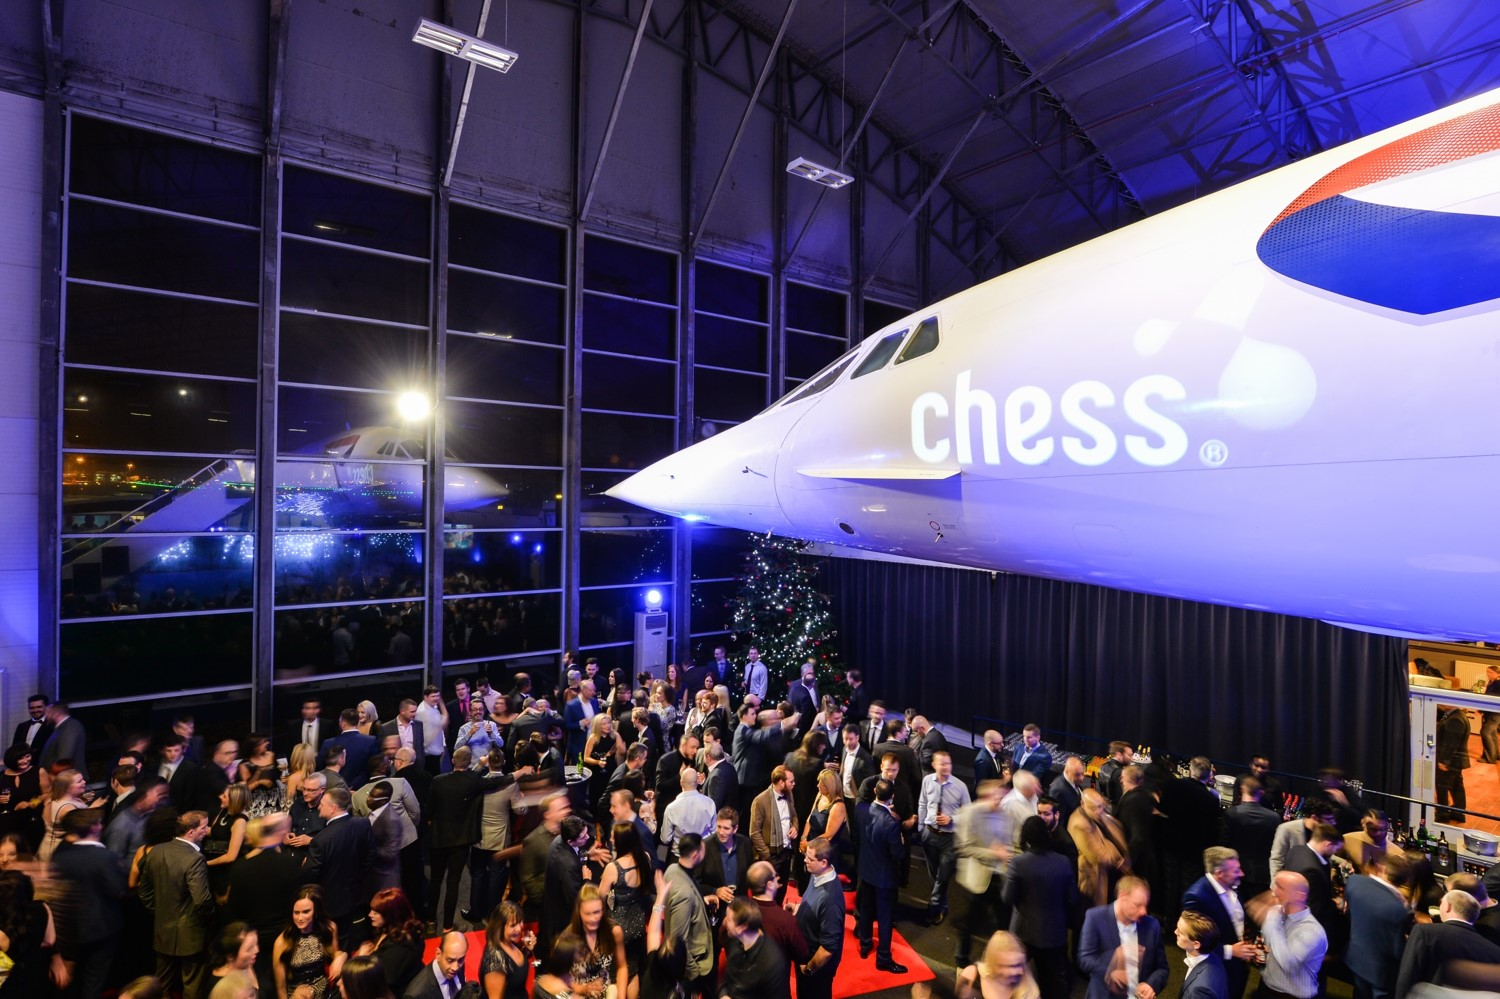 The Hangar at the Concorde Conference Centre